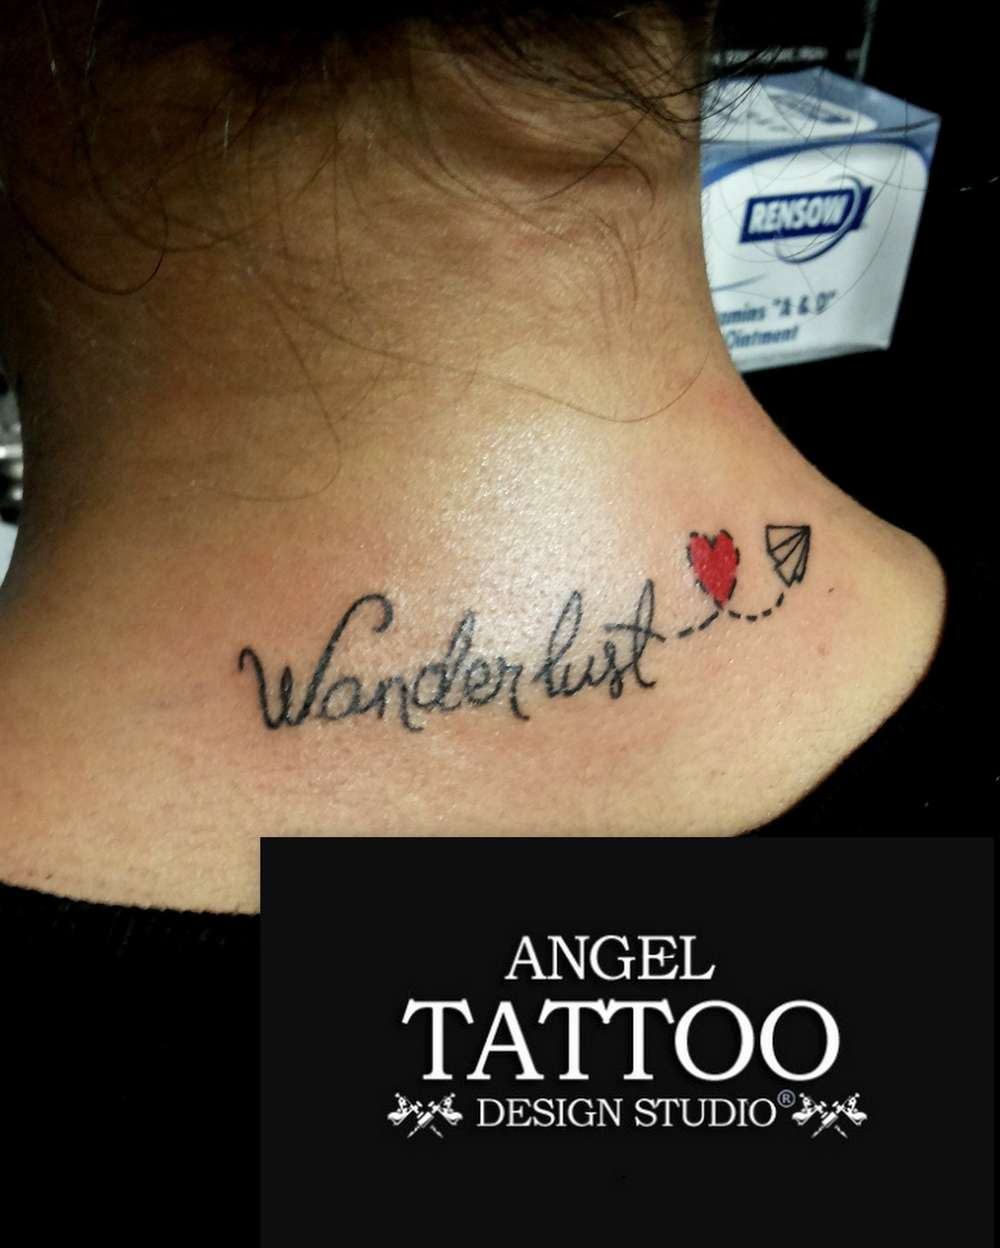 Small tattoo designs best small tattoo design ideas for girls wanderlust tattoo designs voltagebd Image collections